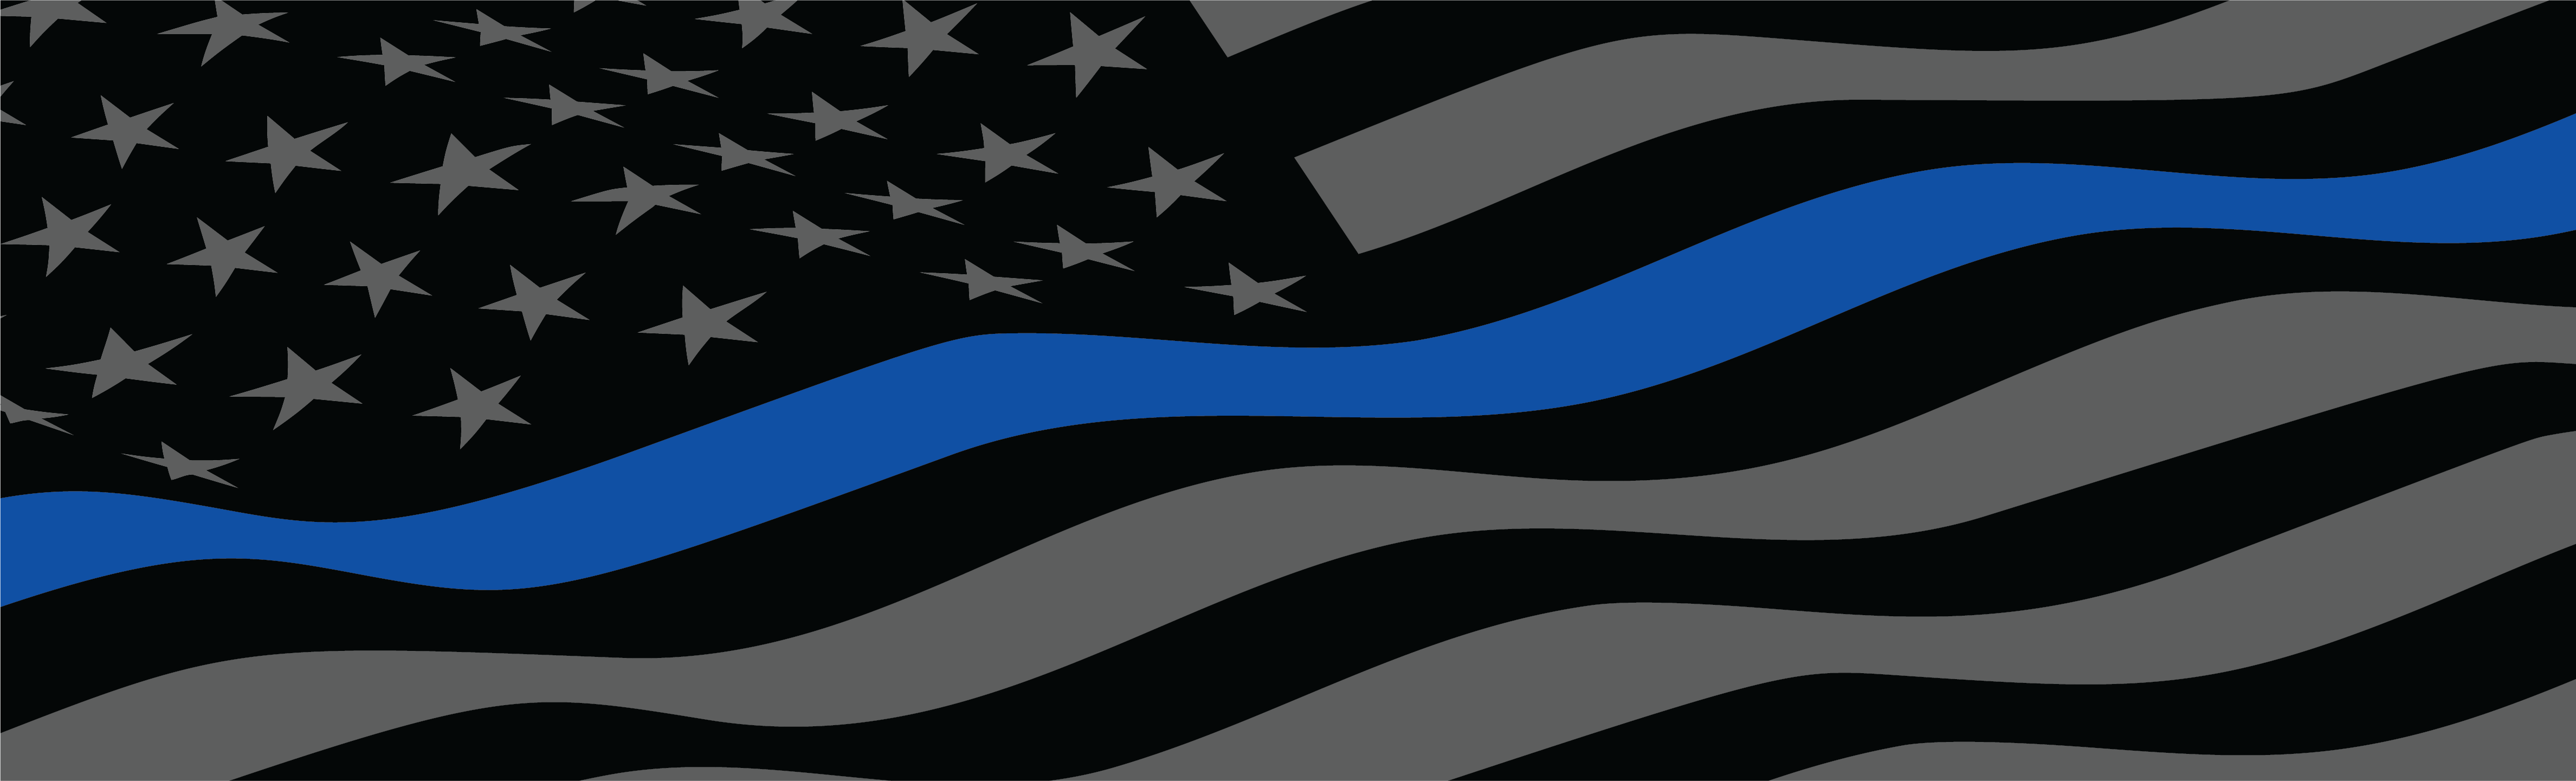 Thin blue line american flag rear window graphic by adventure graphics loading zoom